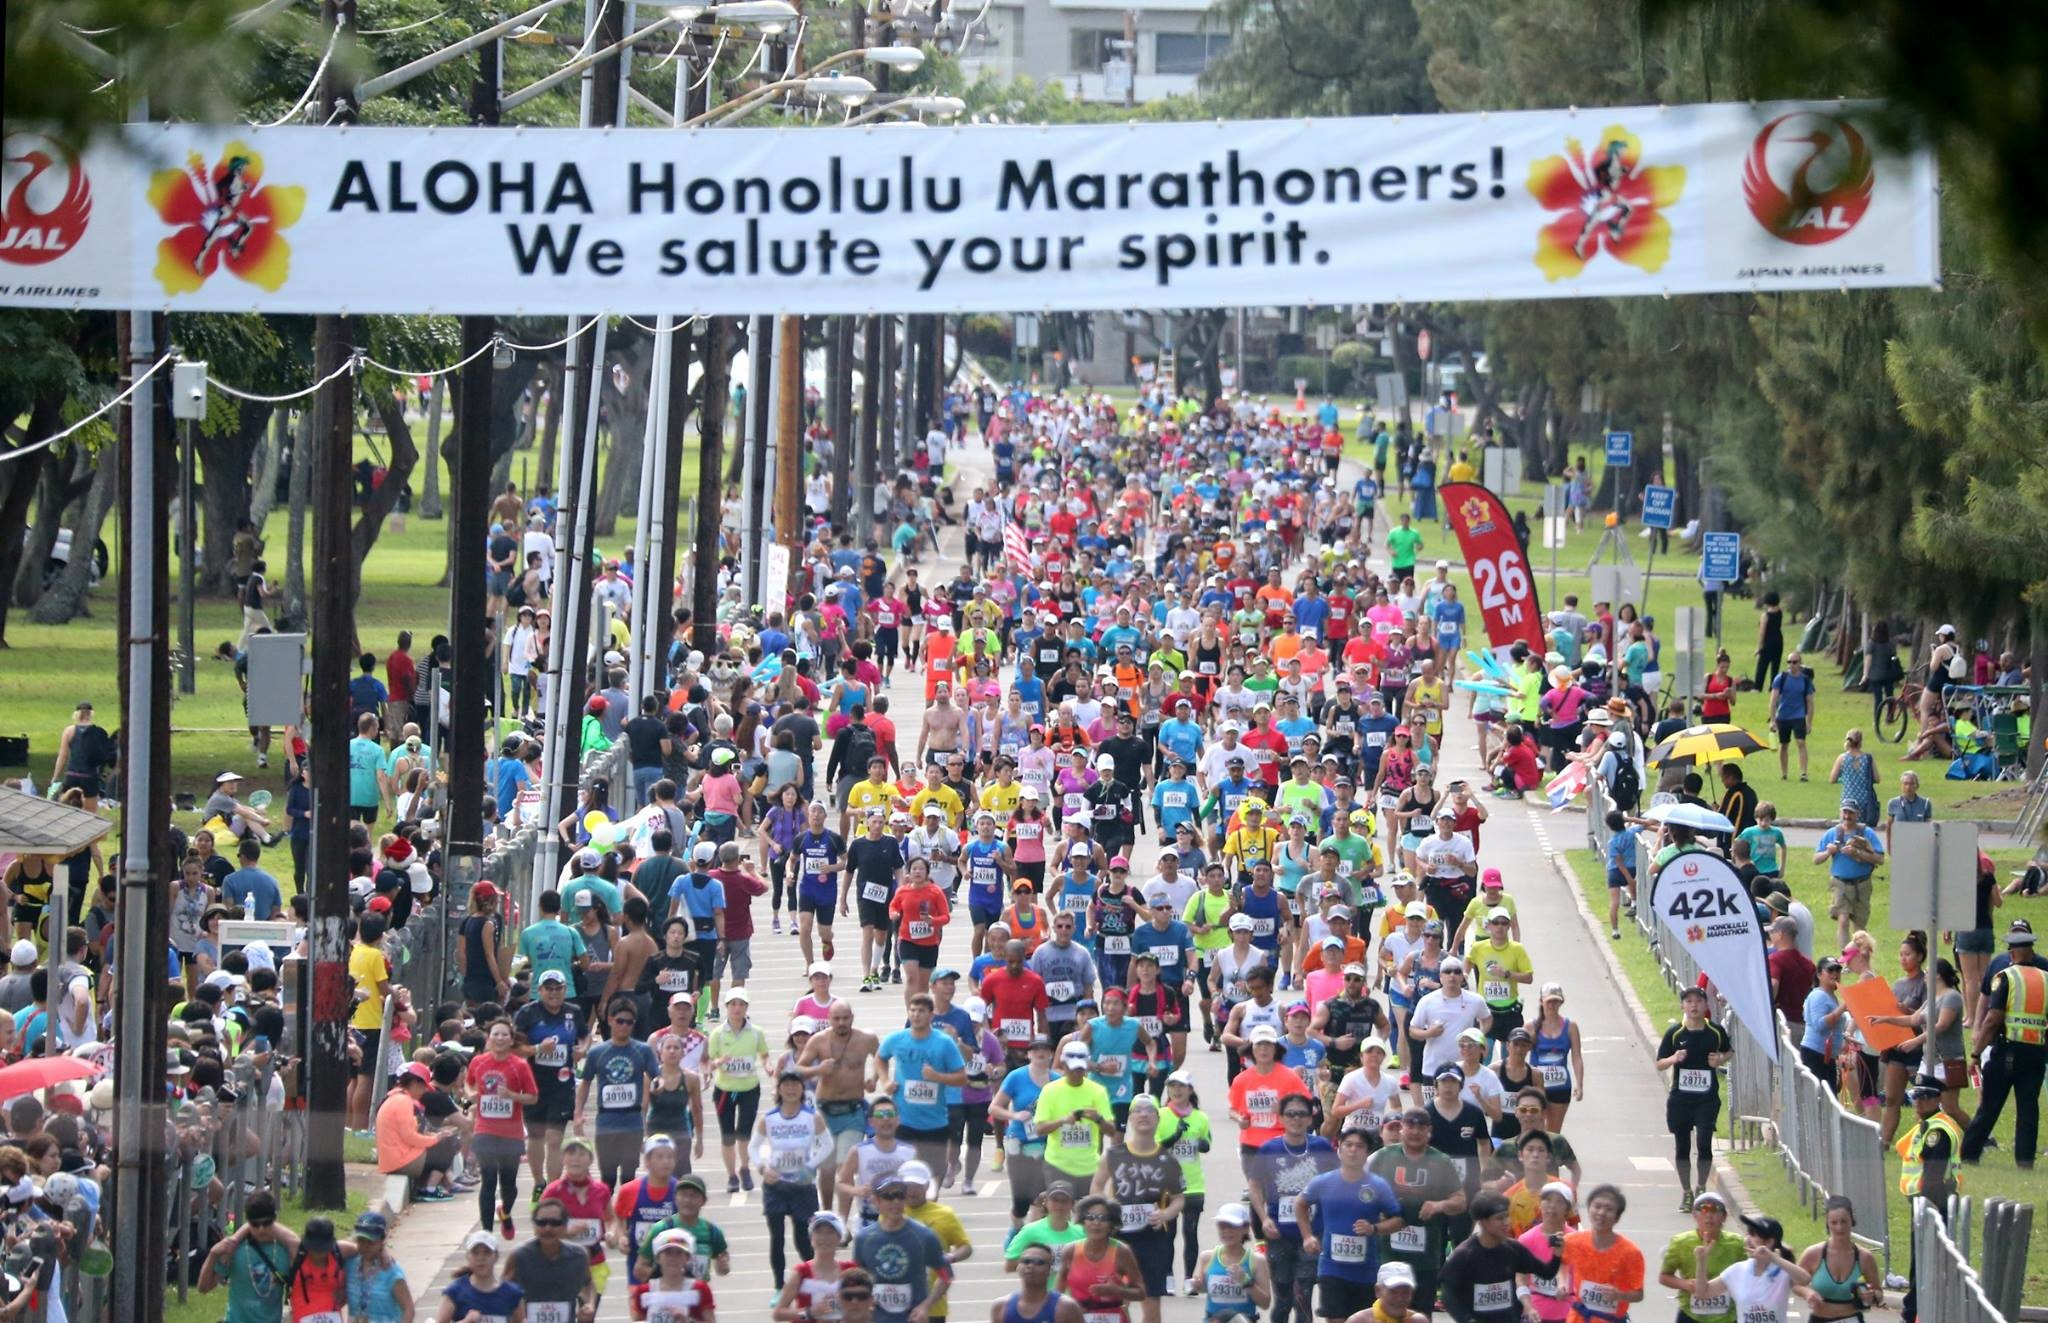 34th Honolulu Marathon Is World's 4th Biggest Marathon